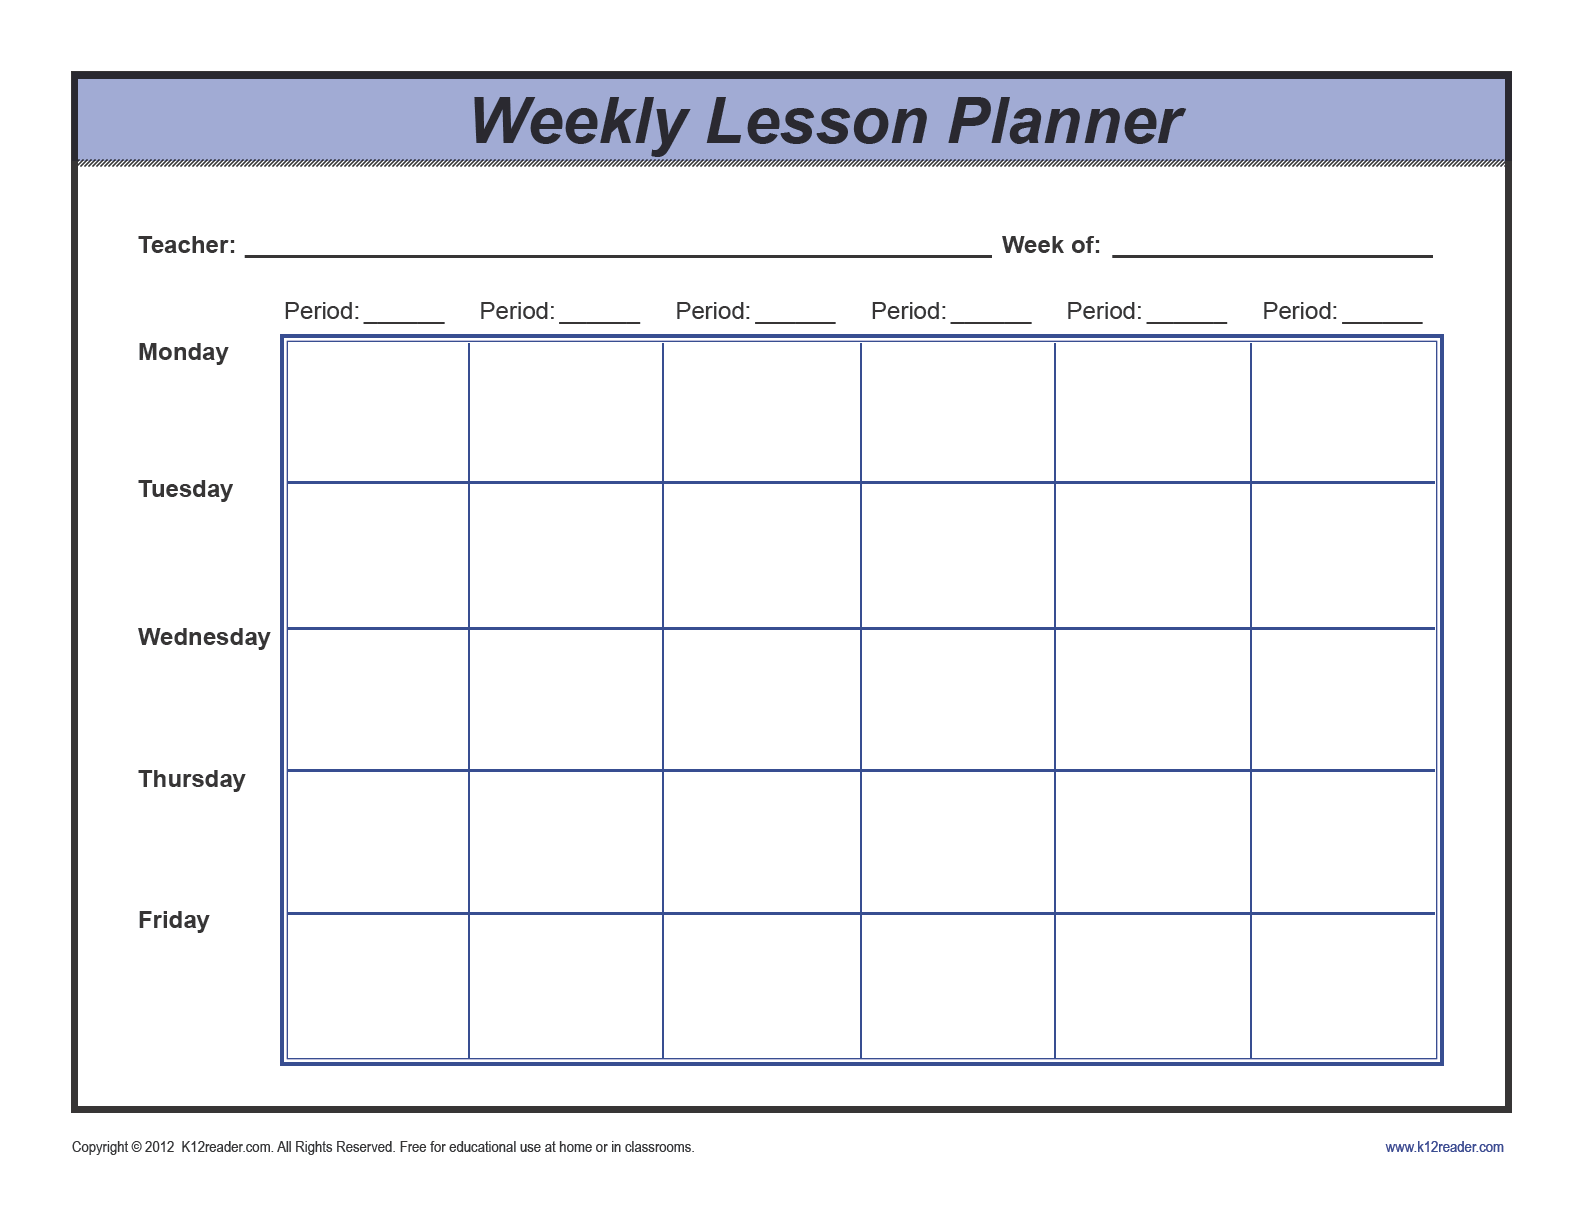 Download weekly lesson plan template preschool pdf for Week long lesson plan template